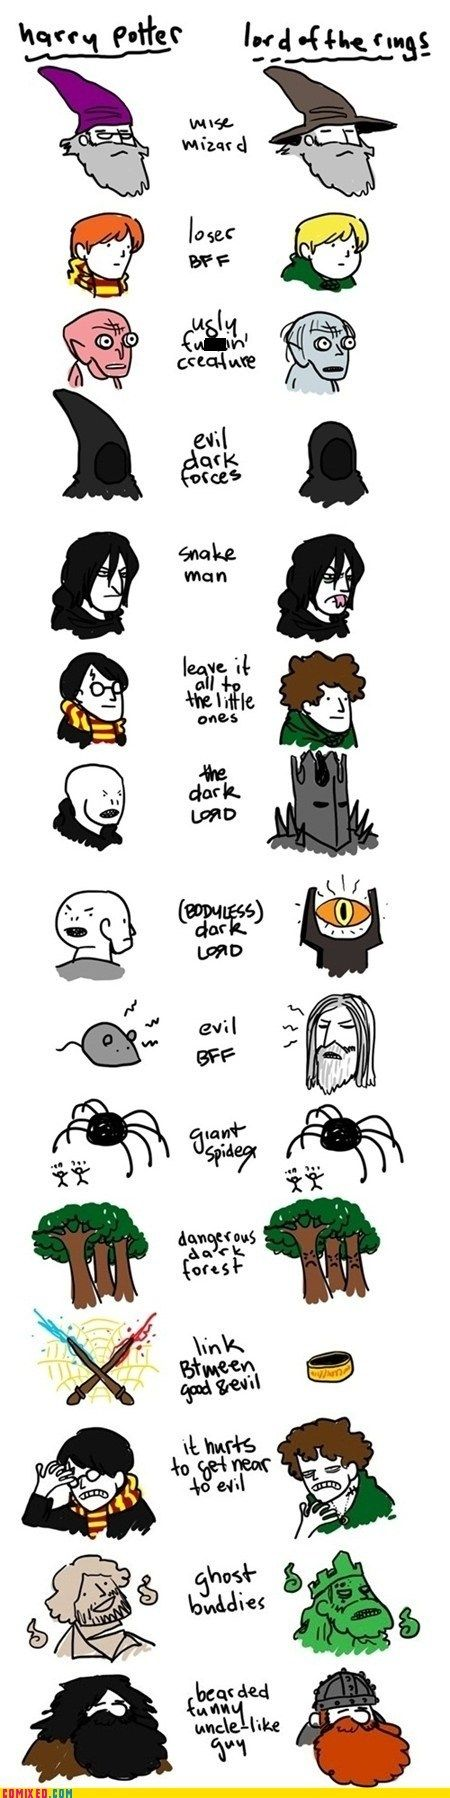 Harry Potter V. Lord Of The Rings